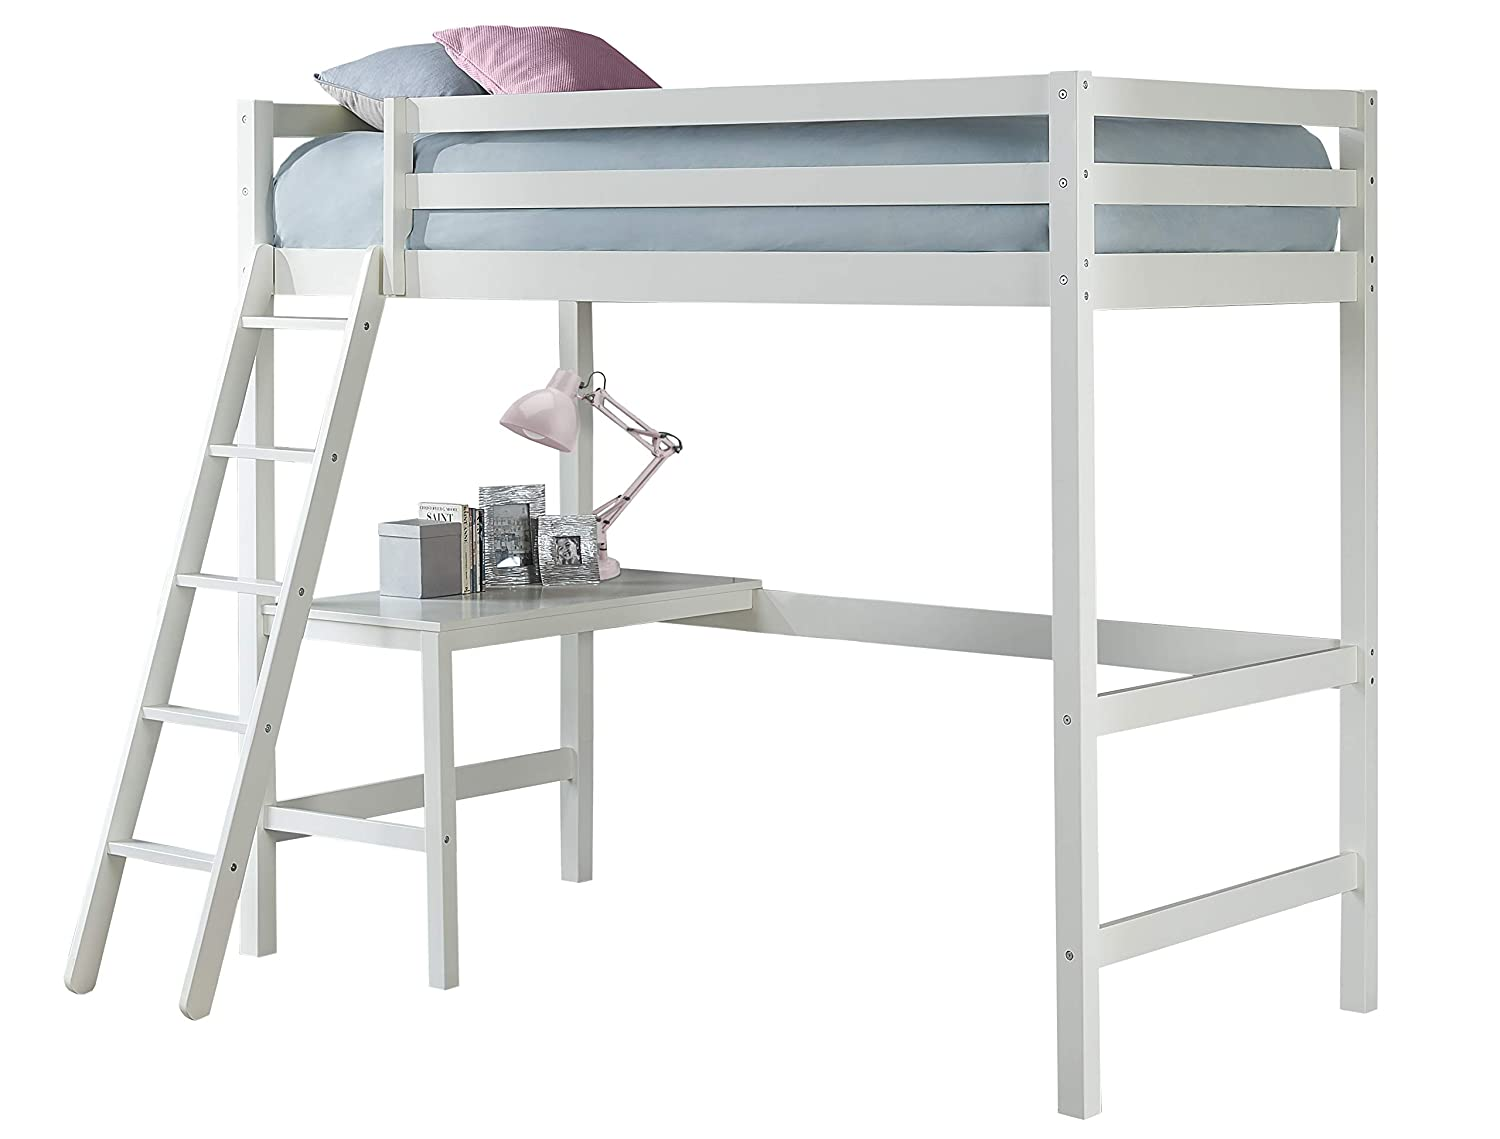 Hillsdale Furniture Hillsdale Caspian Twin Loft Bed, White